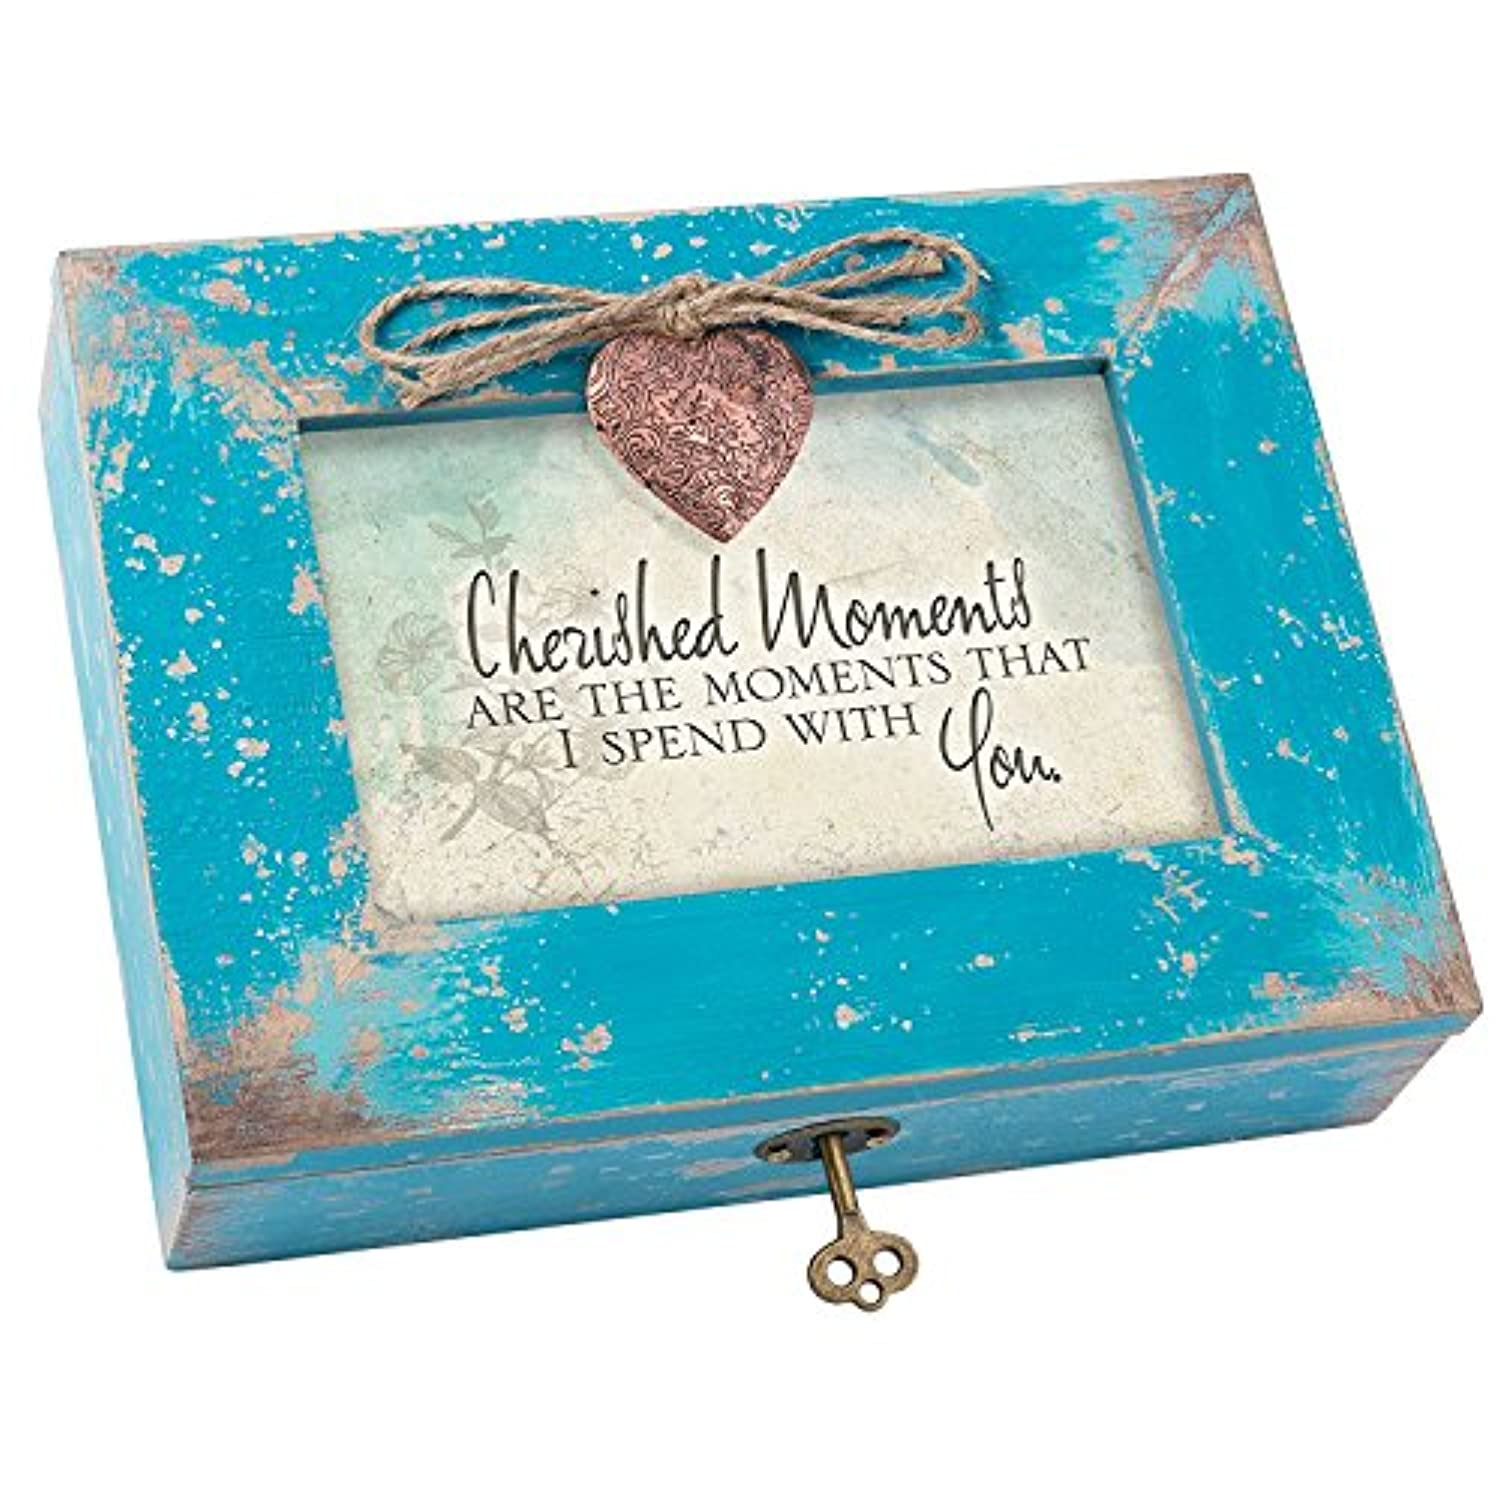 Cherished Moments are With You Teal Wood Locket Jewellery Music Box Plays Tune Wind Beneath My Wings